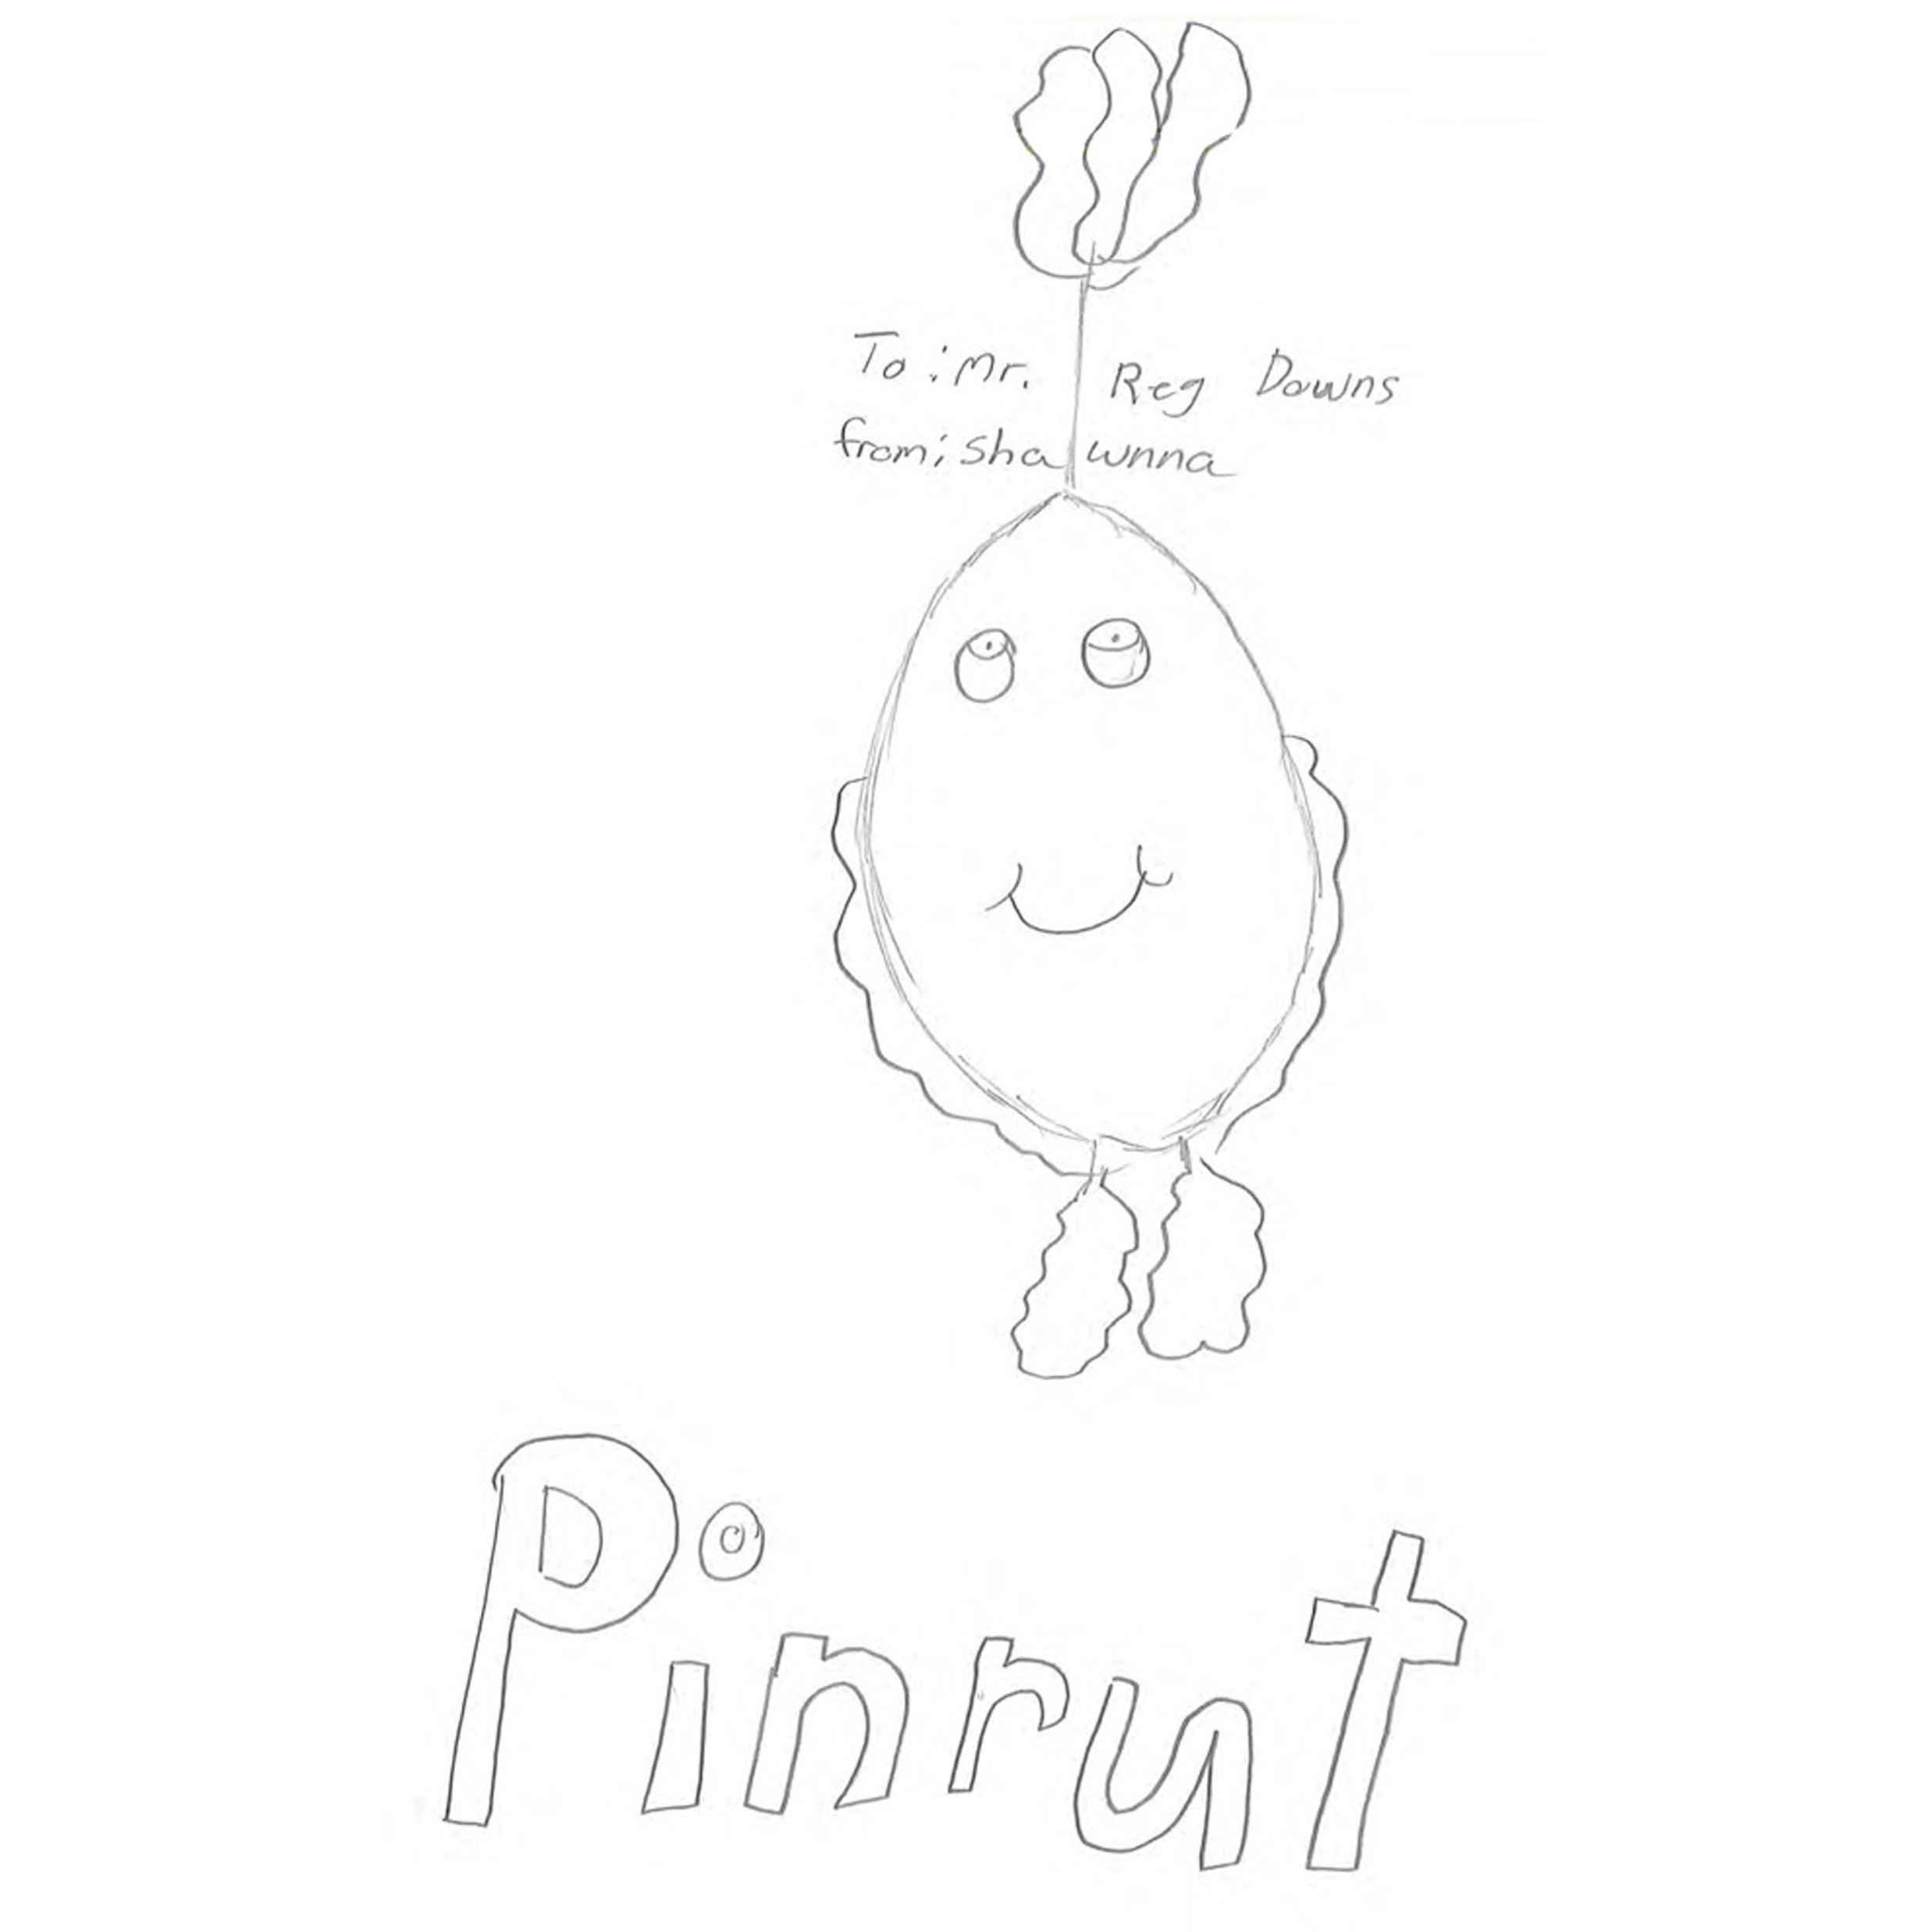 Pinrut the Turnip Boy